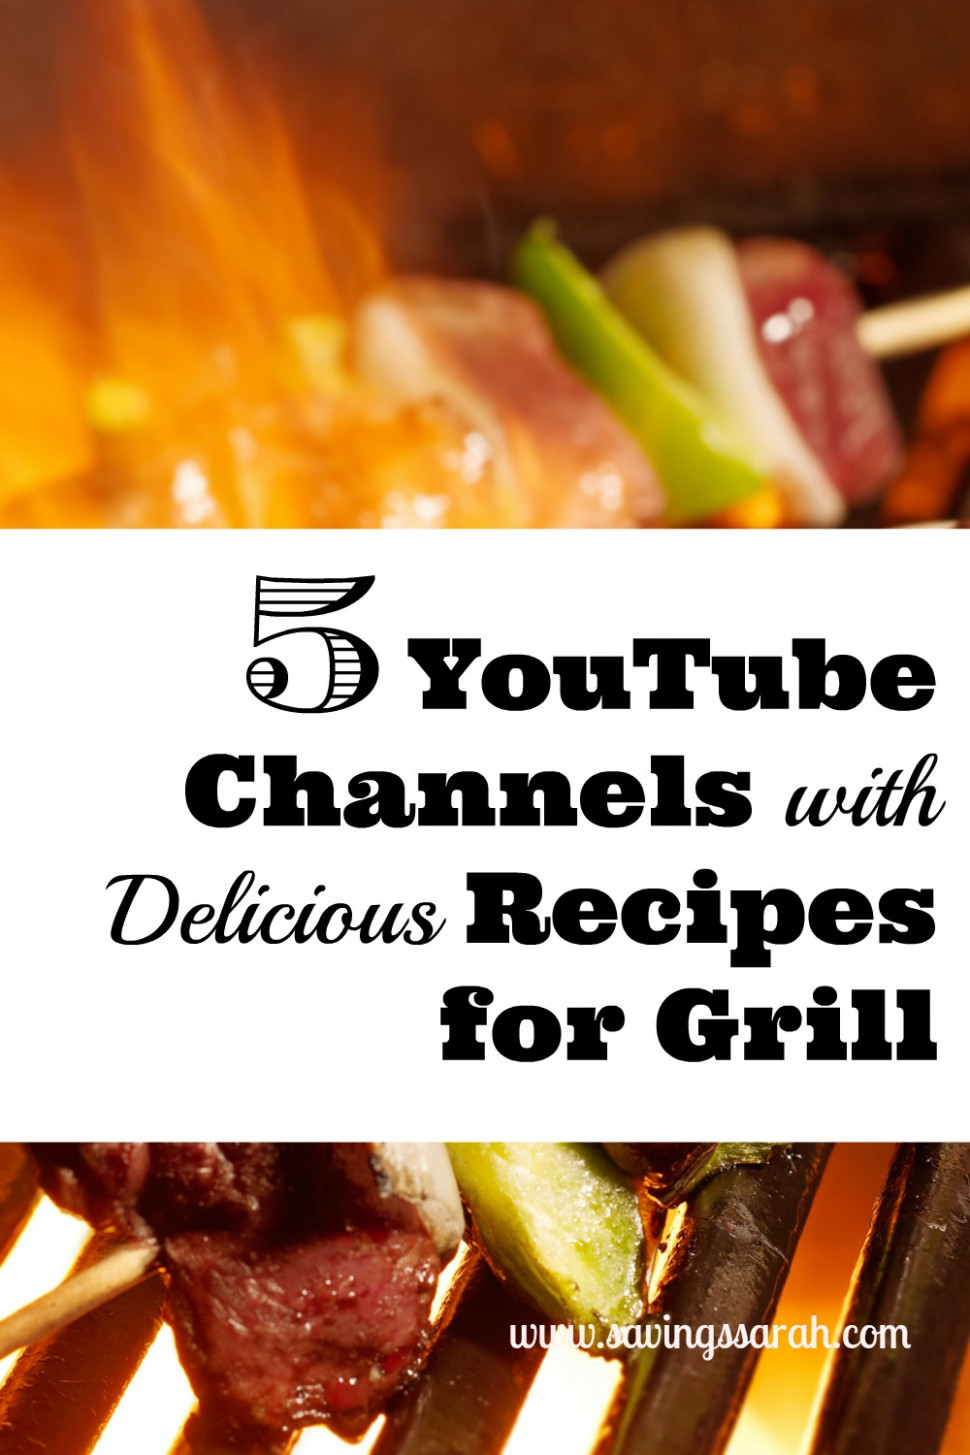 5 YouTube Channels with Delicious Recipes for Grill ..